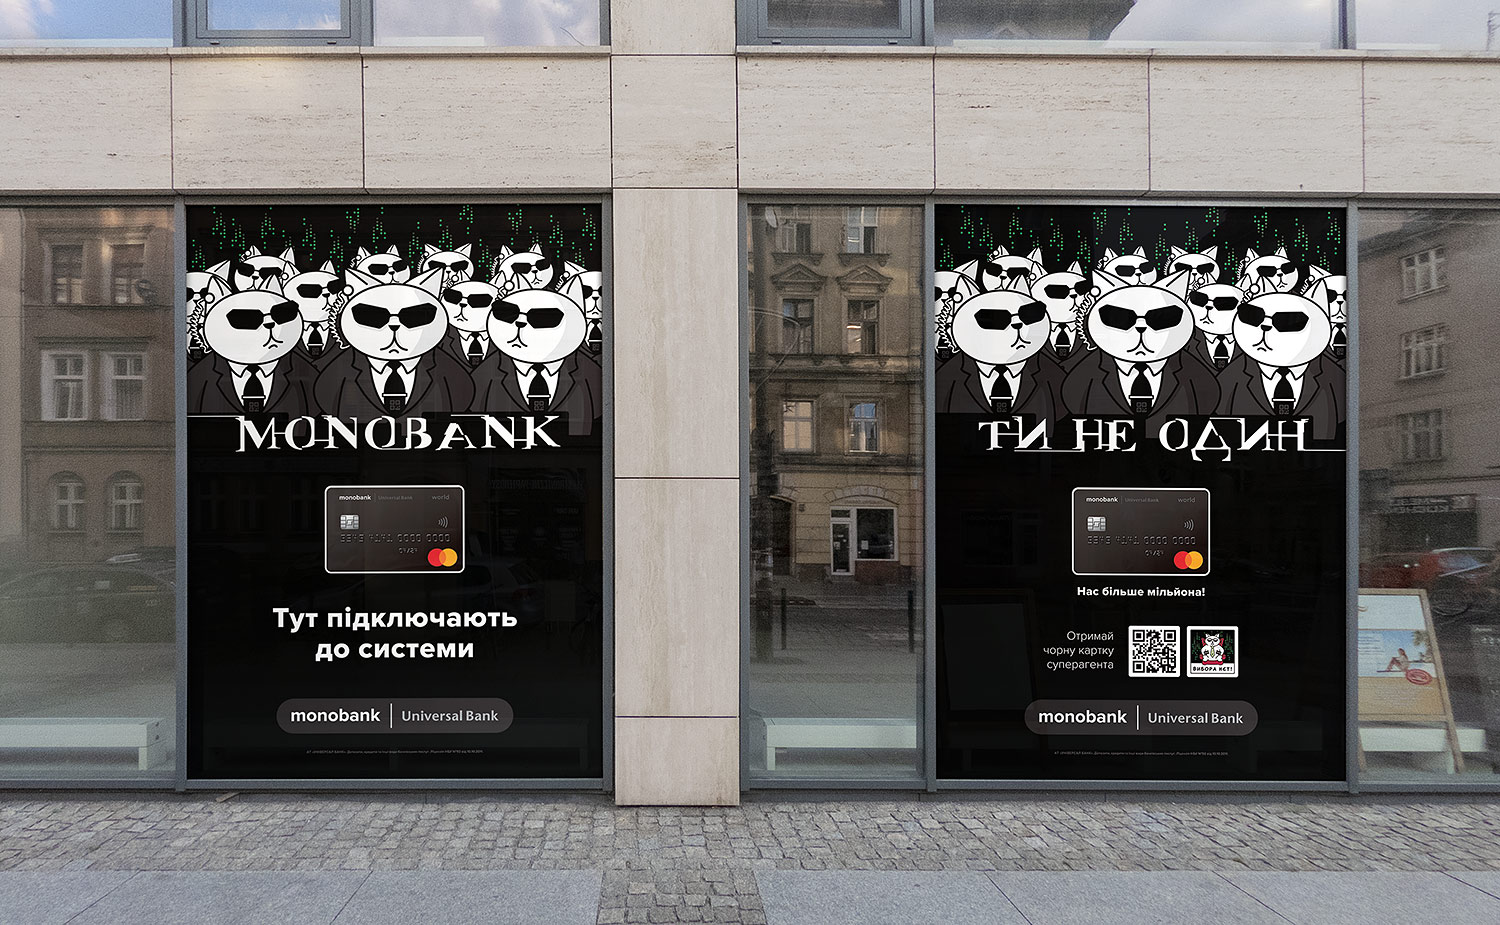 Where to register a black credit card? monobank Universal Bank promotional posters.